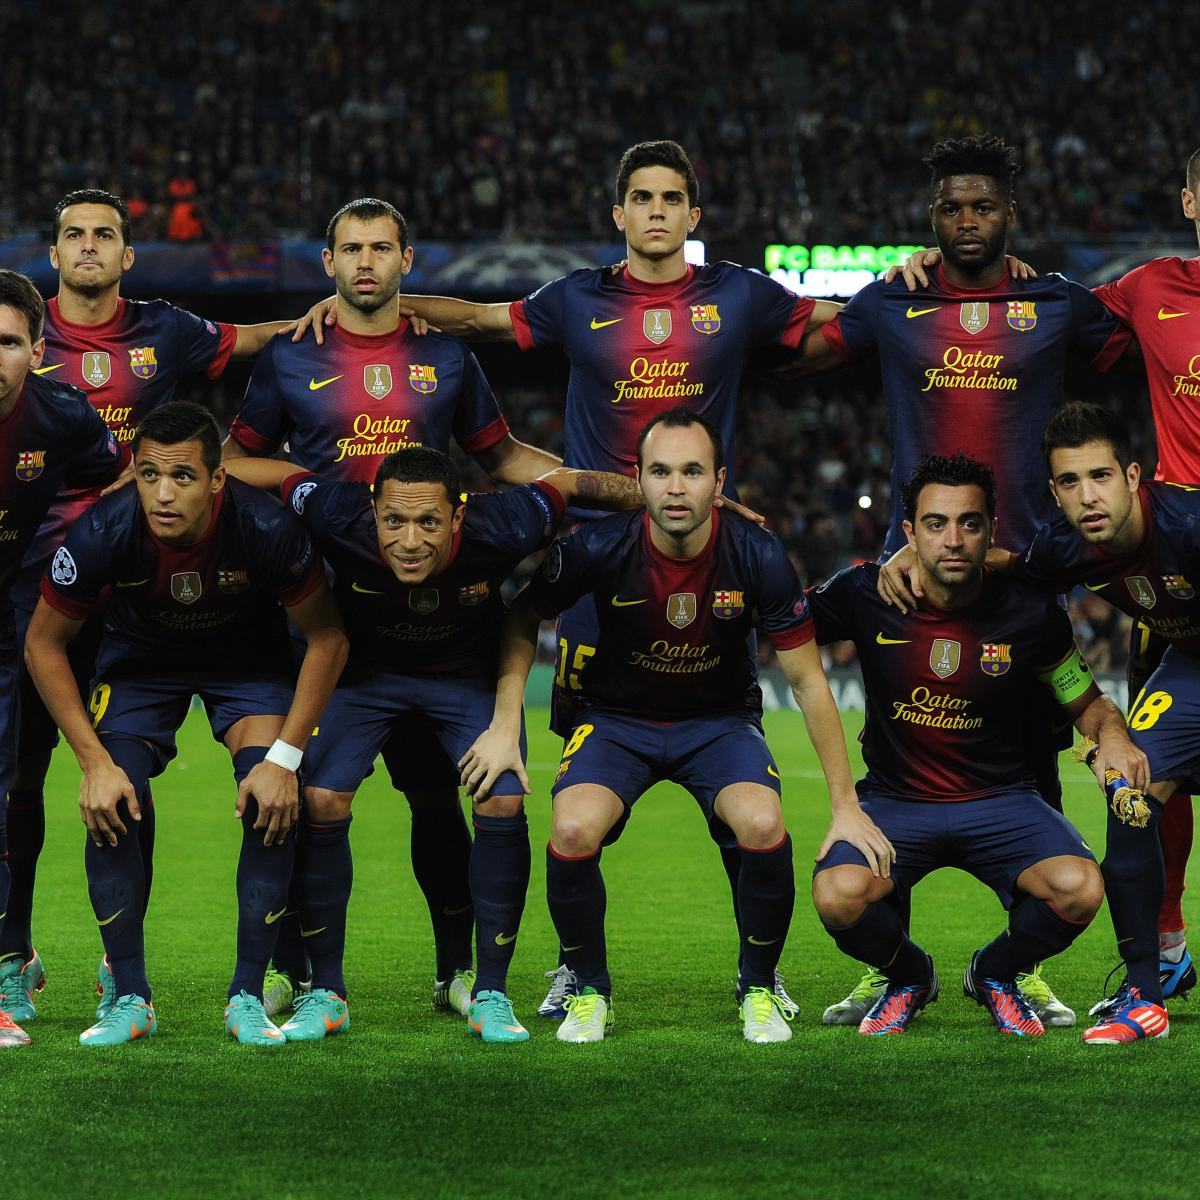 Celta Vigo Vs Barcelona Direct: FC Barcelona Vs. Celta Vigo: 6 Bold Predictions